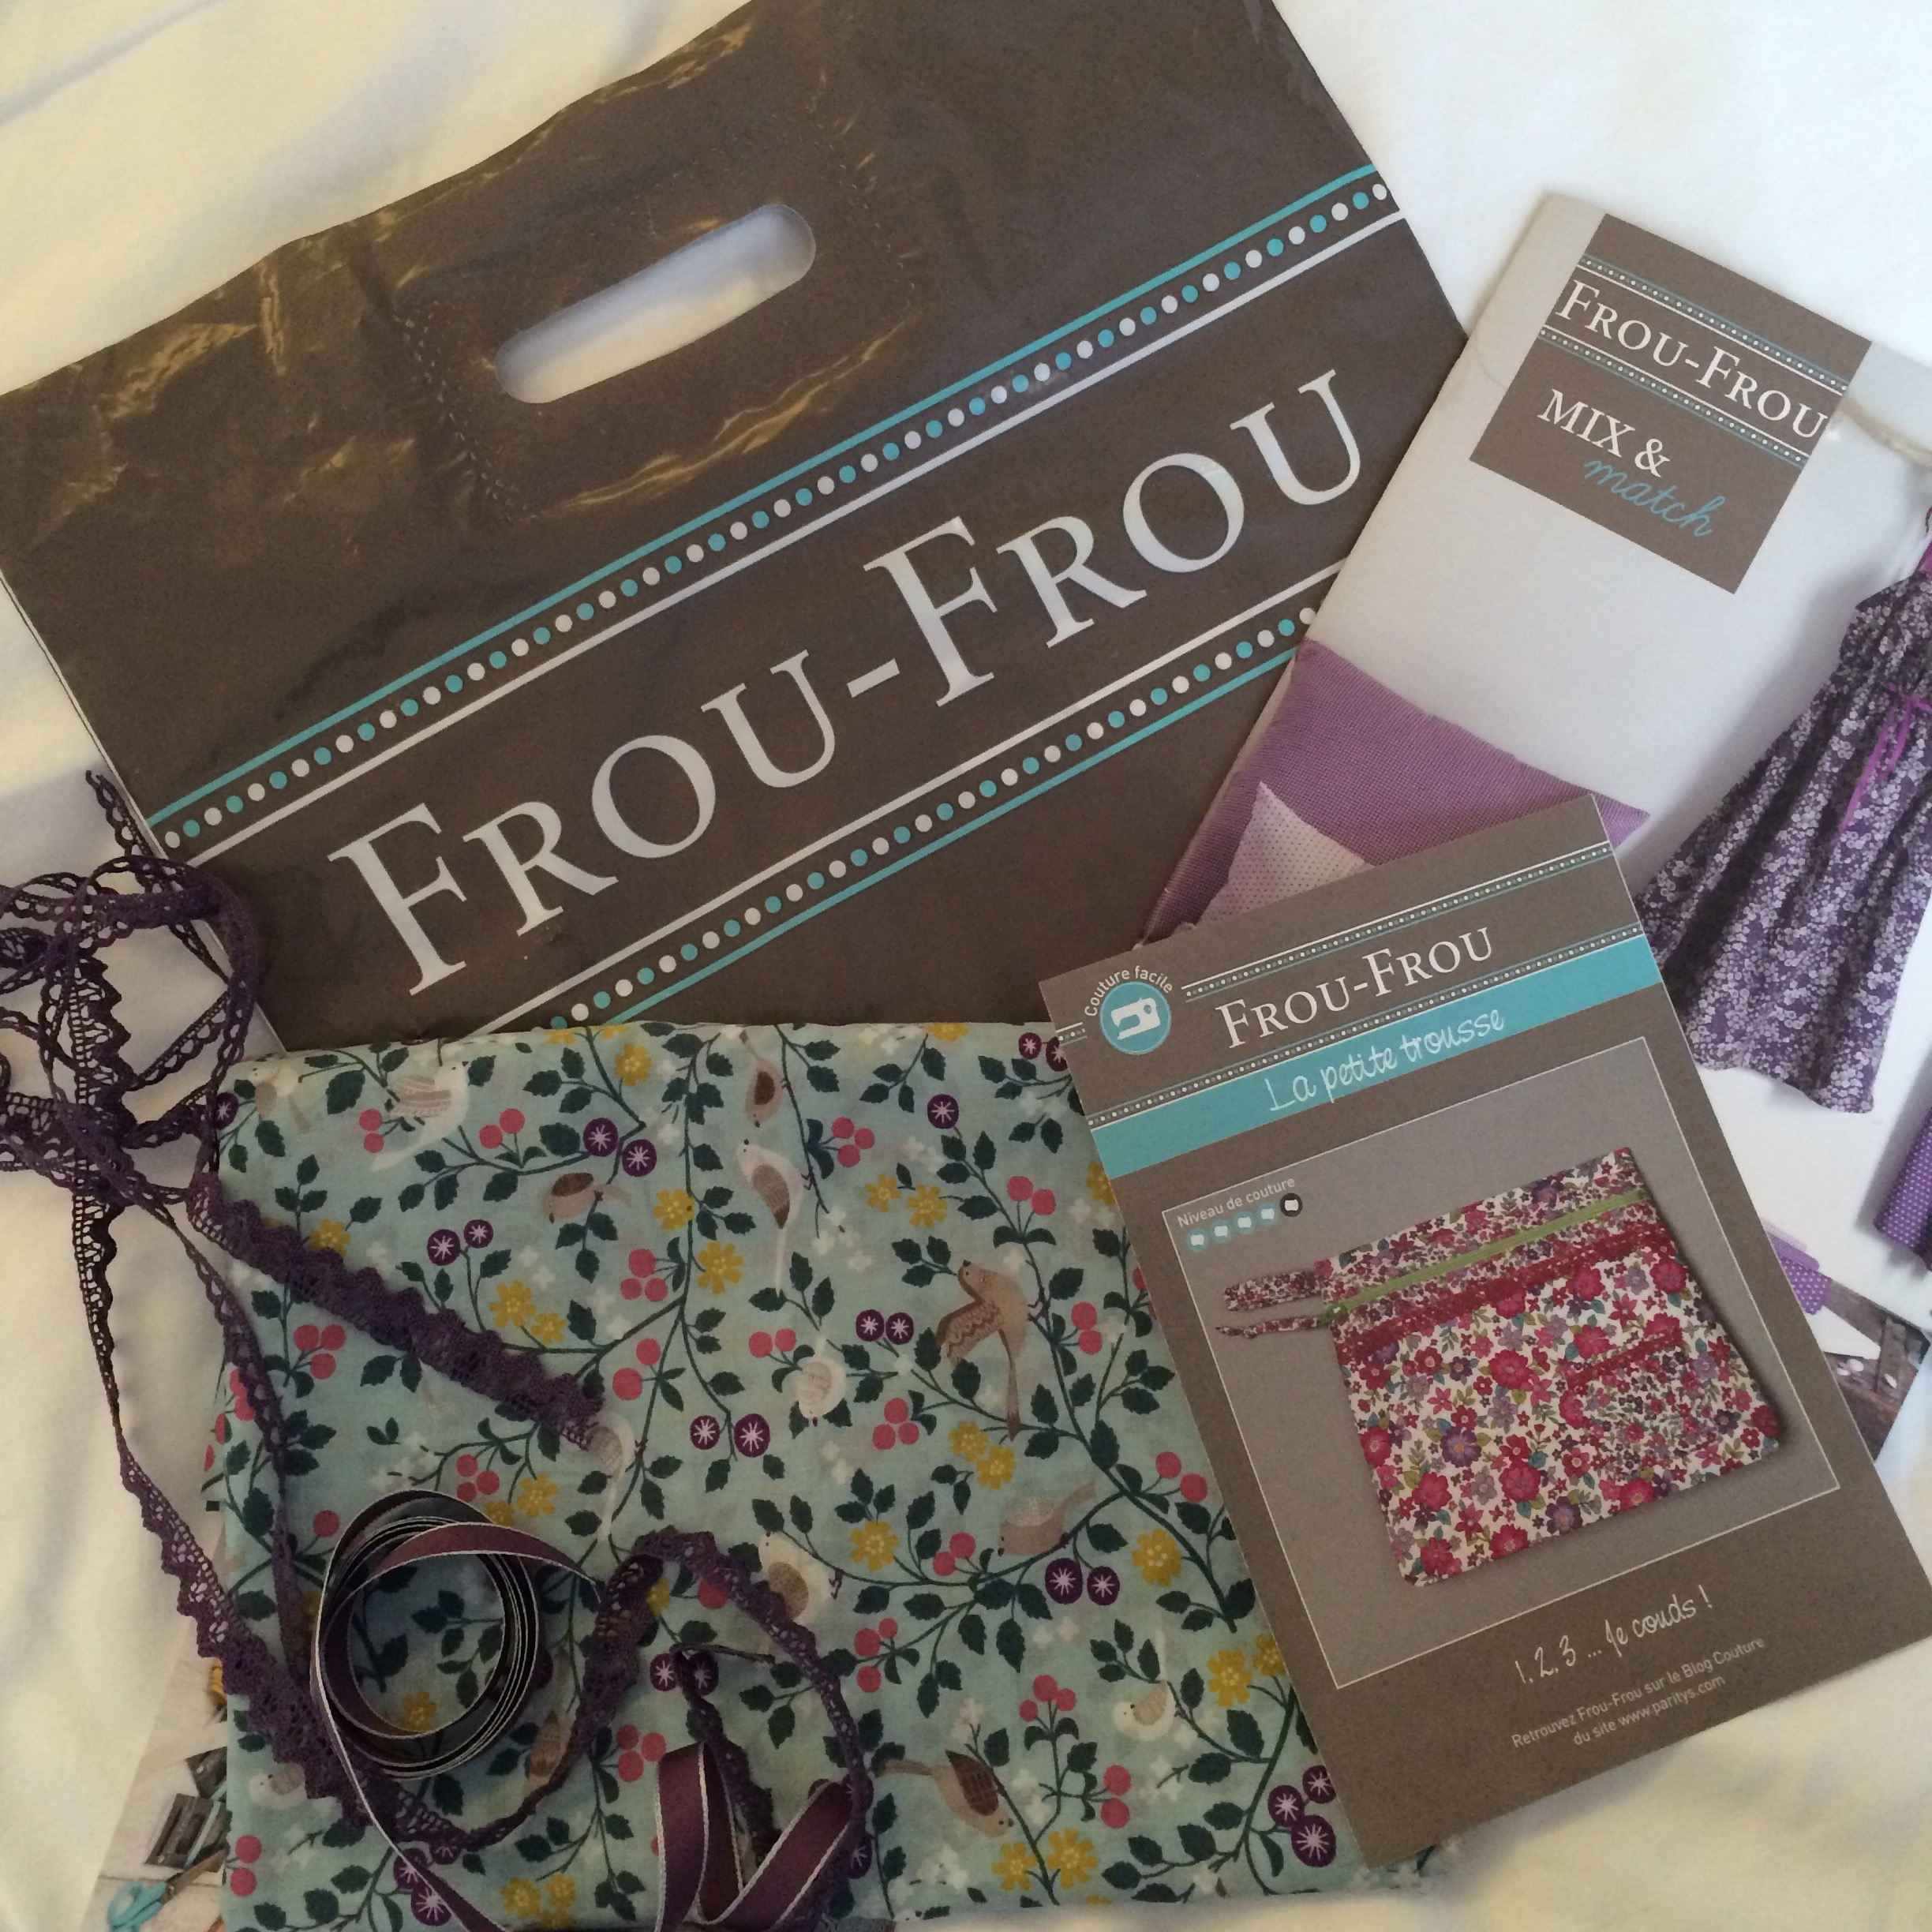 A small purchase from Frou-Frou